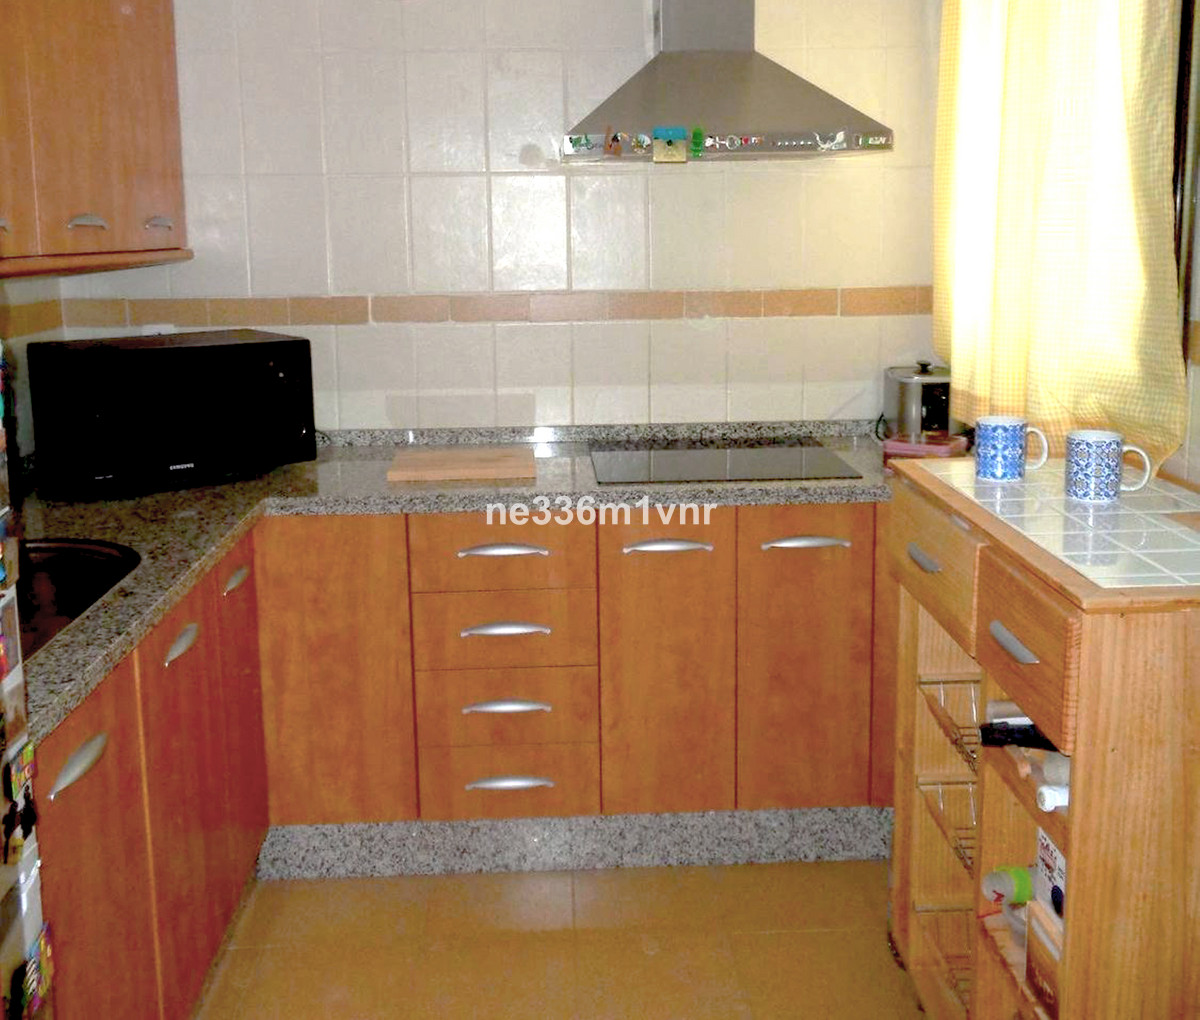 EXCELLENT FLAT JUST A STEP AWAY FROM THE HISTORIC CENTRE!   The property consists of 60 m2, distribu, Spain